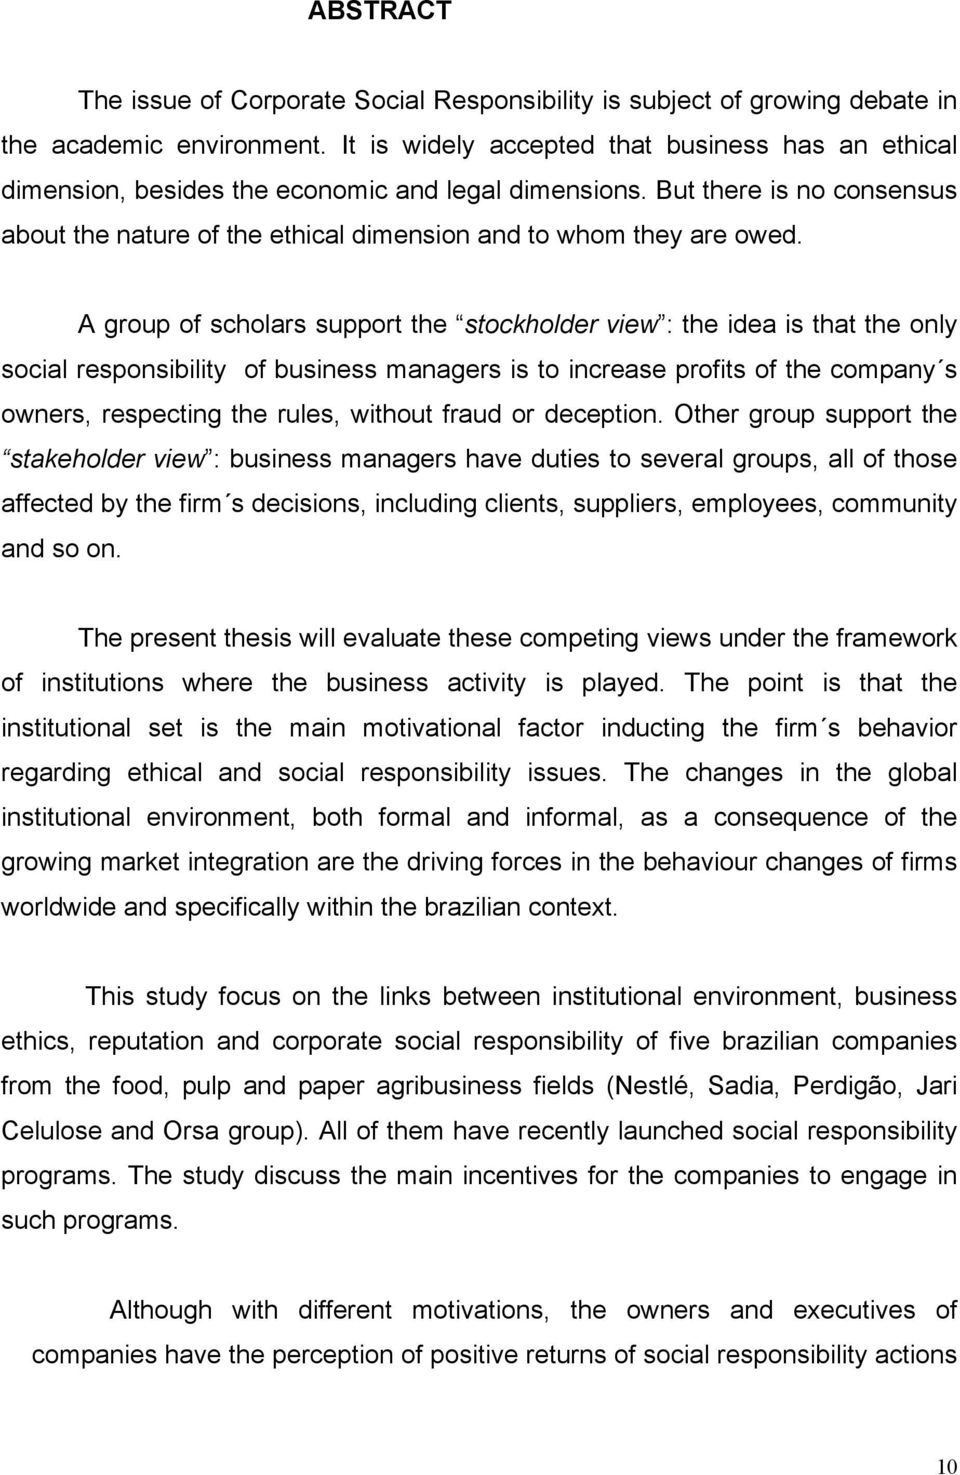 A group of scholars support the stockholder view : the idea is that the only social responsibility of business managers is to increase profits of the company s owners, respecting the rules, without